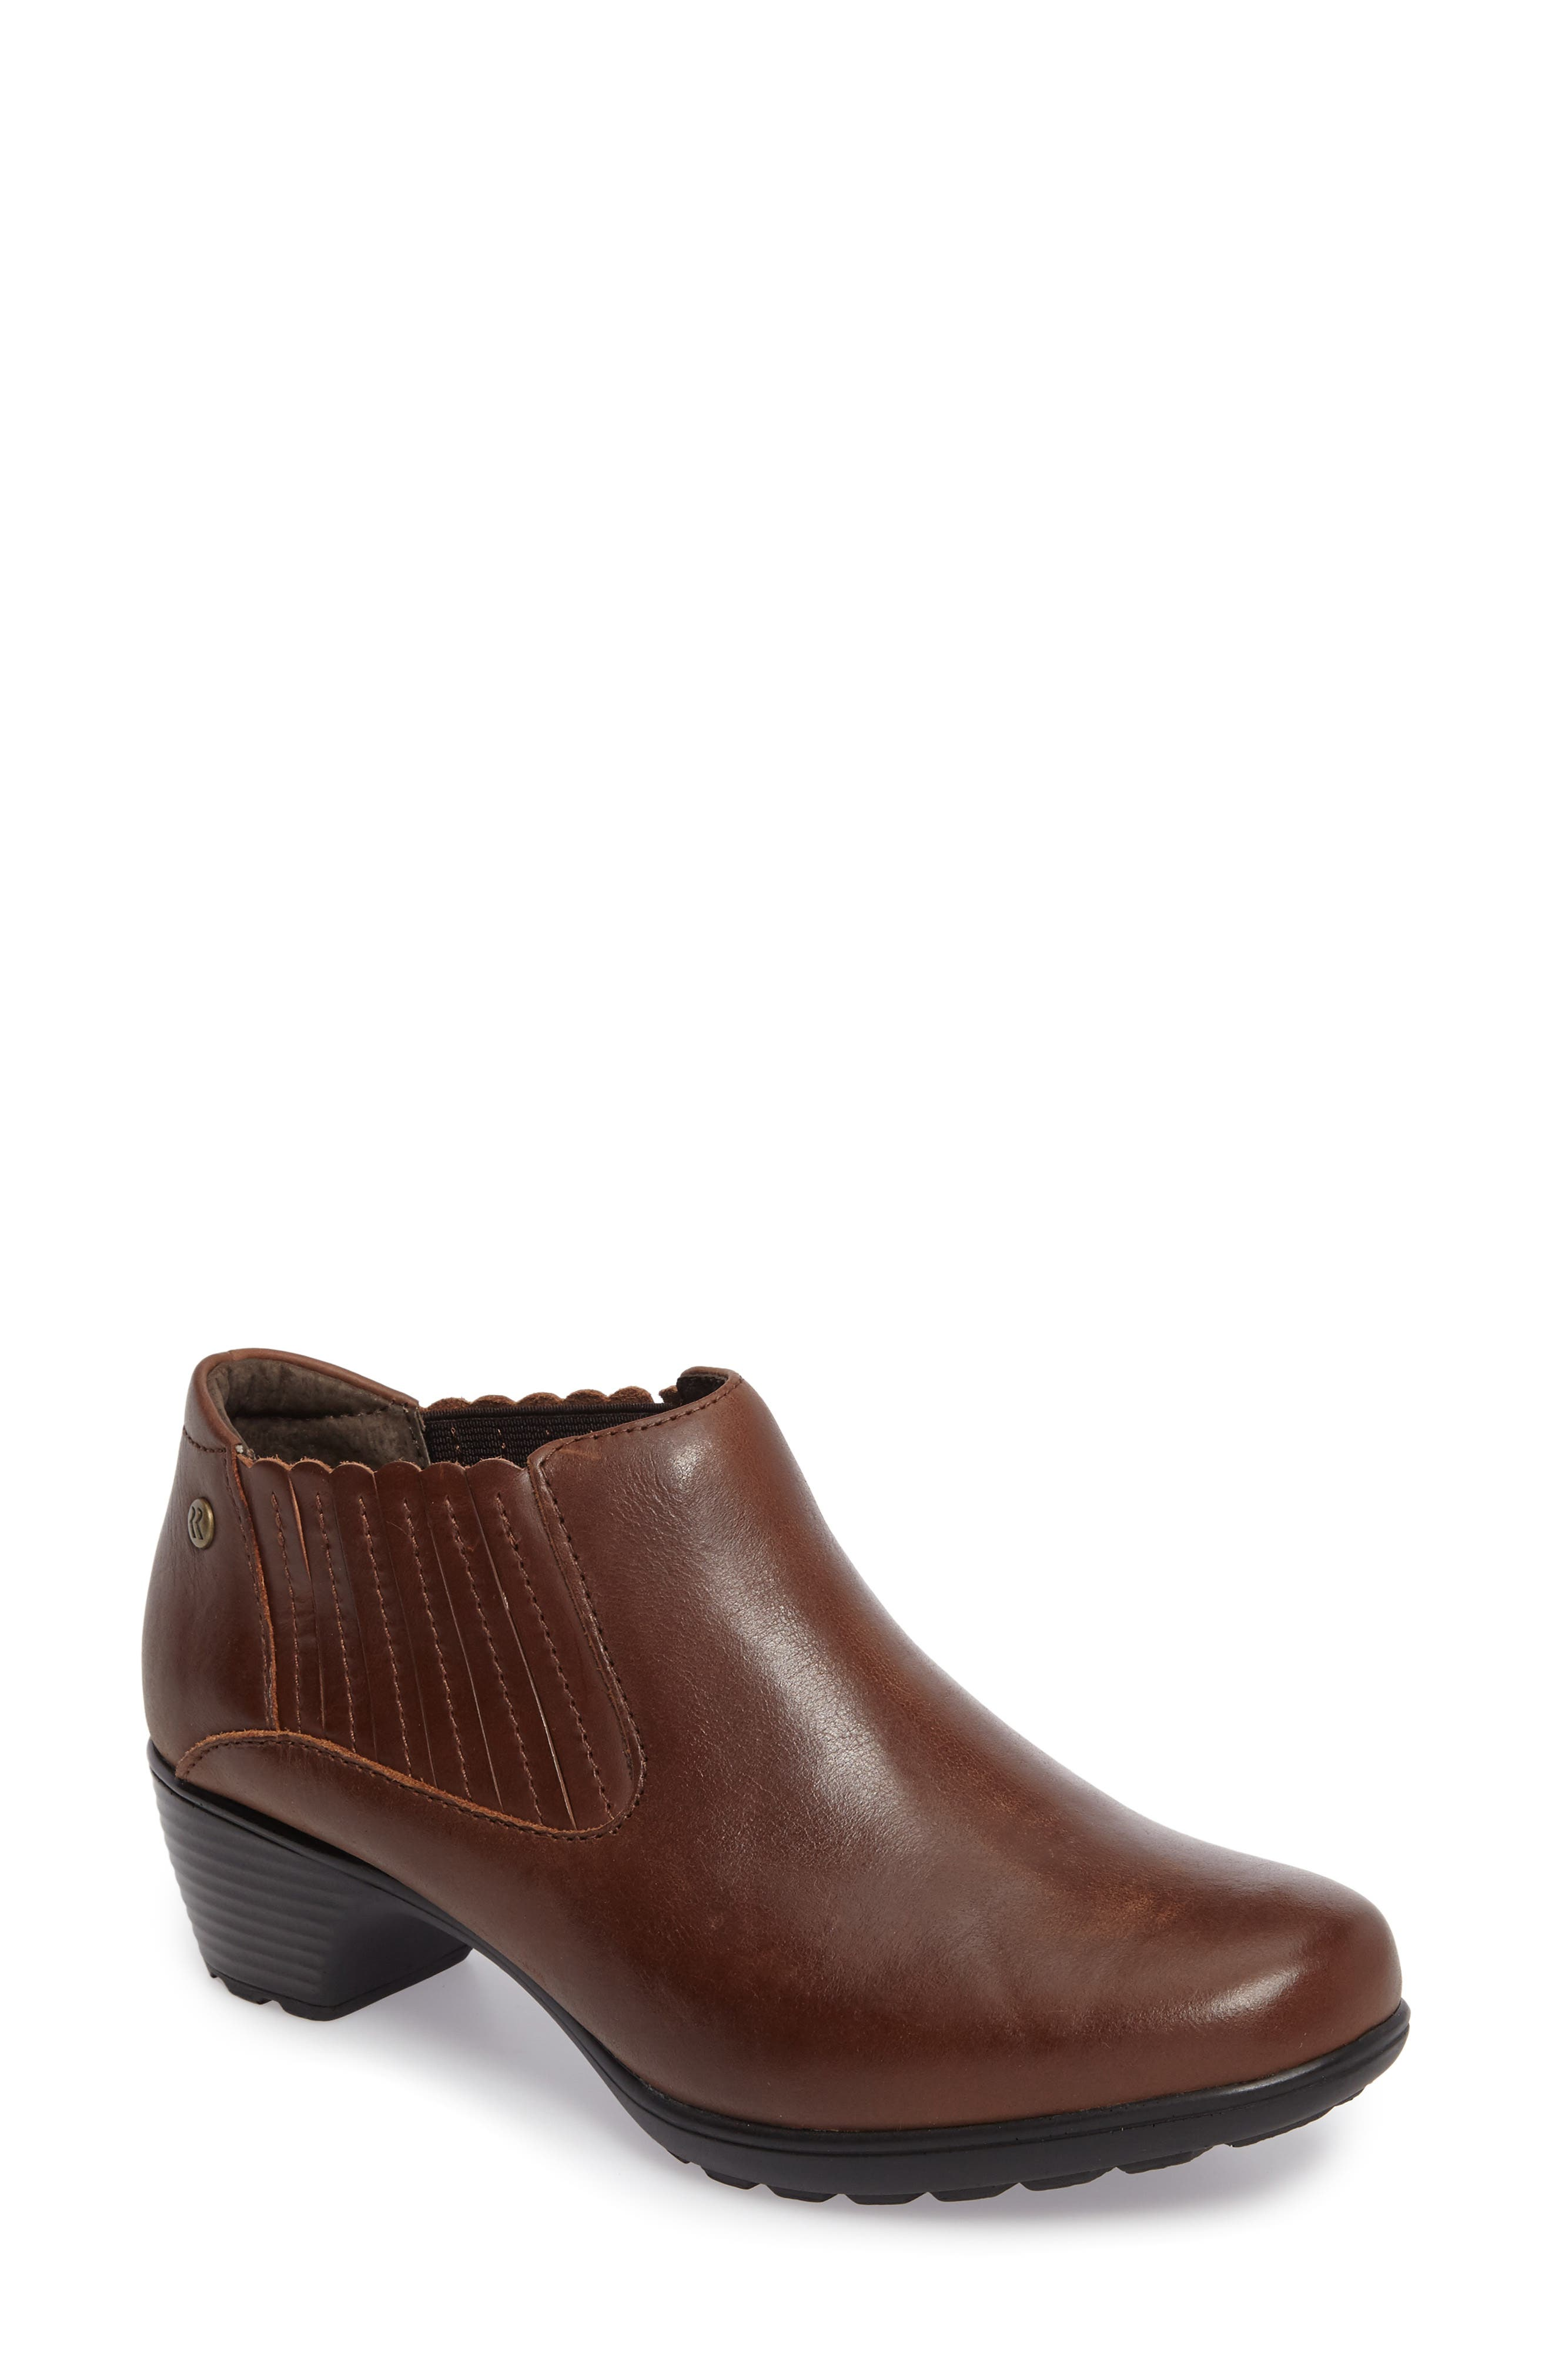 'Banja 15' Bootie,                         Main,                         color, Moro Leather